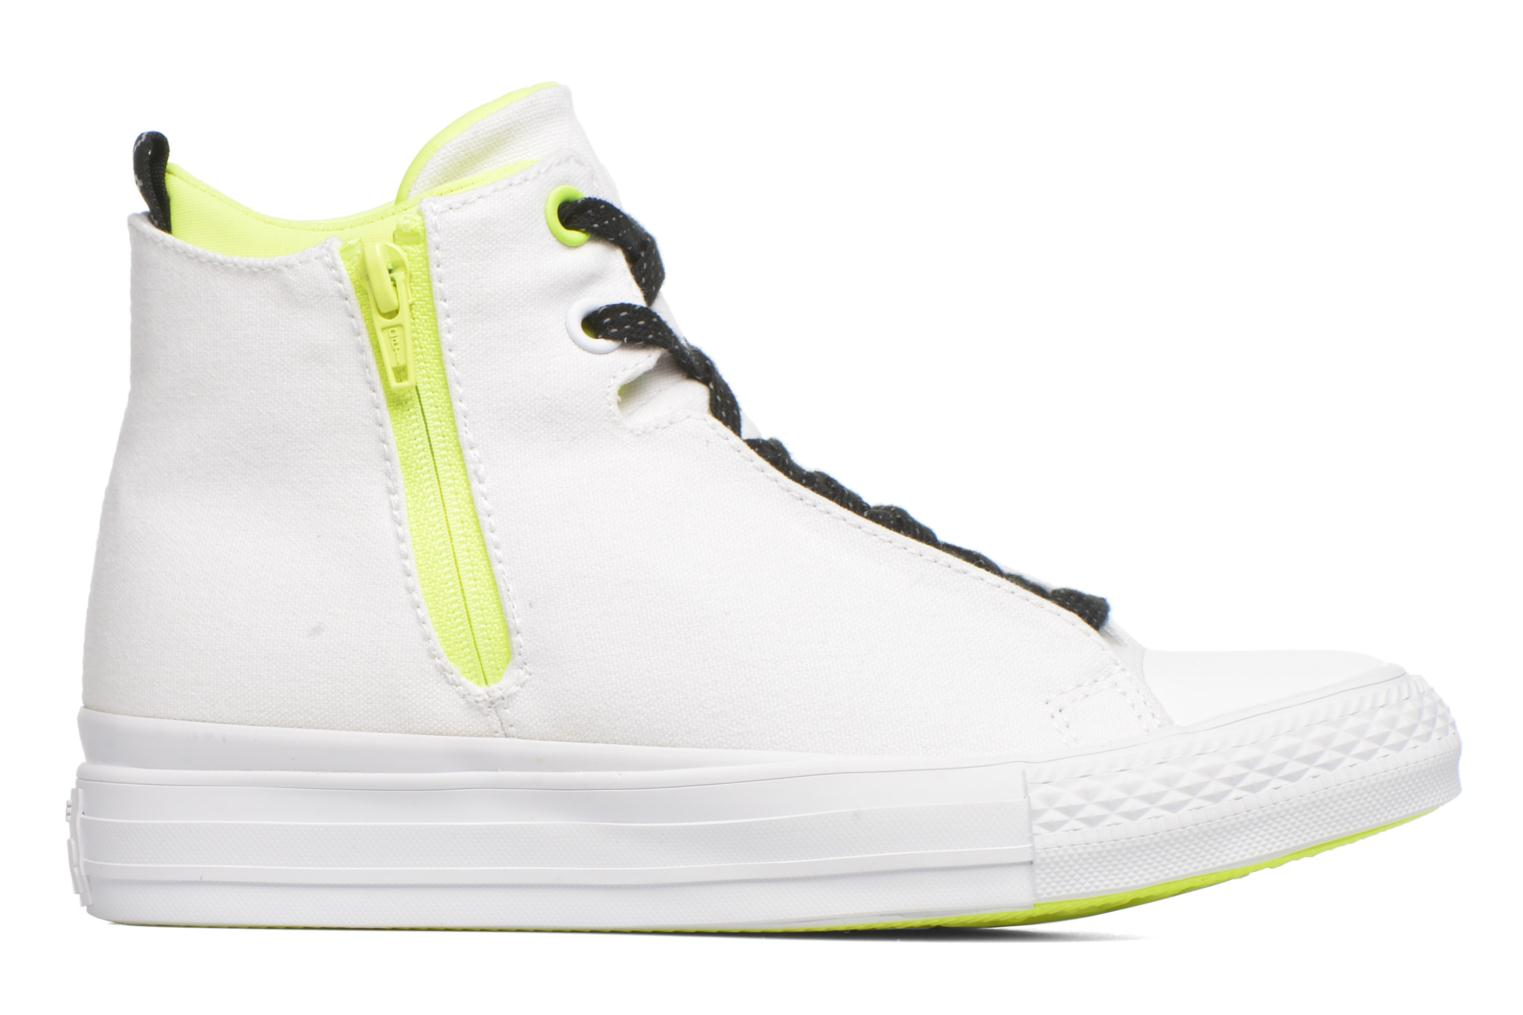 Ctas Selene Shield Canvas Mid White/Volt